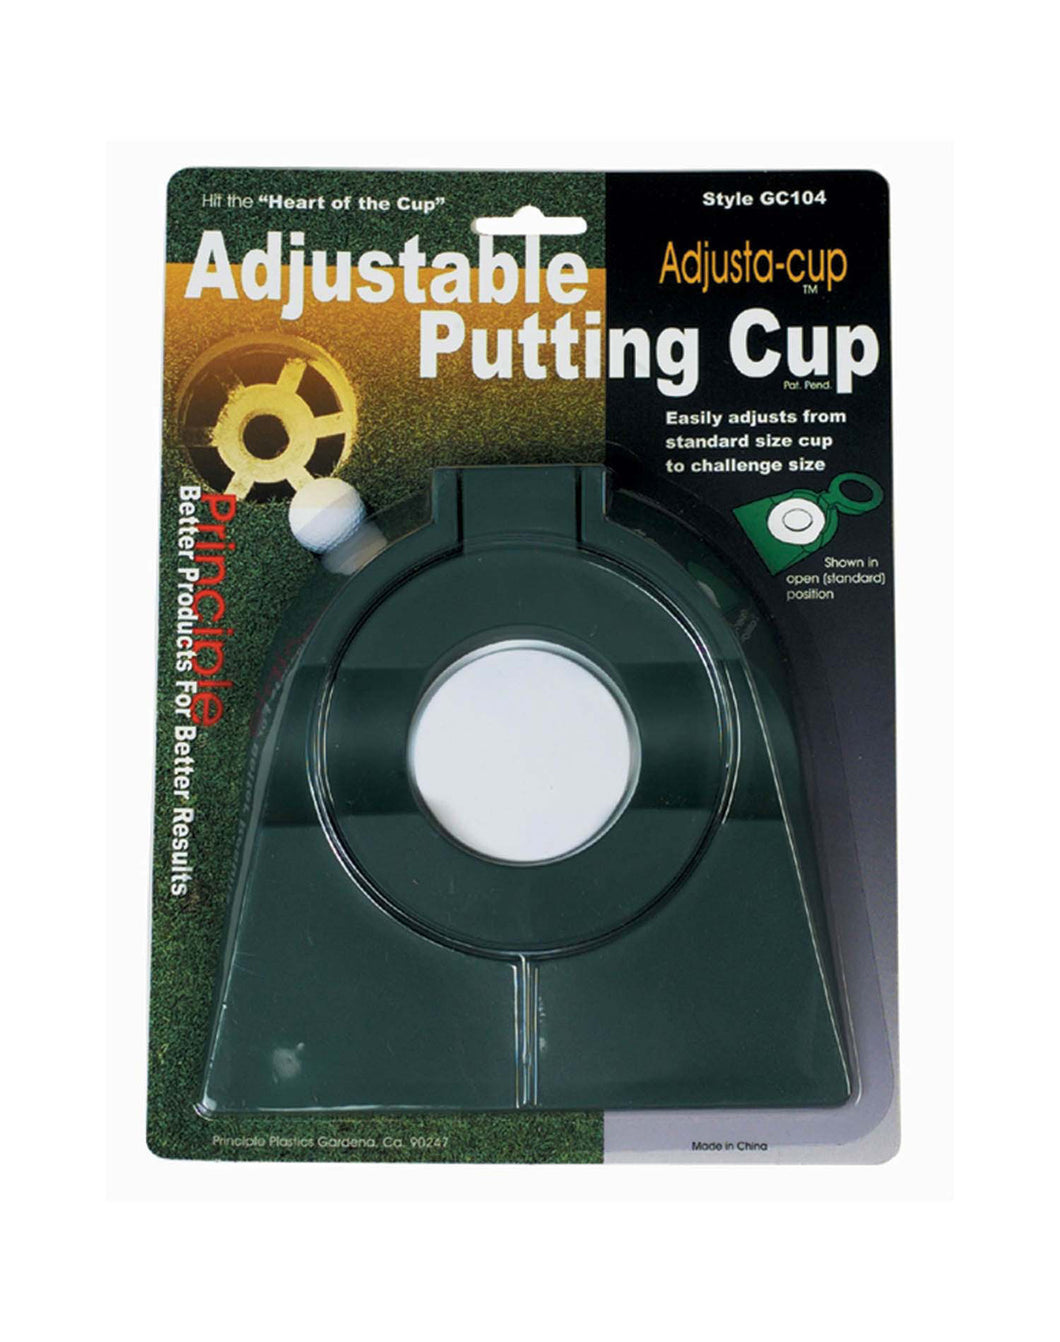 Adjust-cup - Adjustable Putting Cup